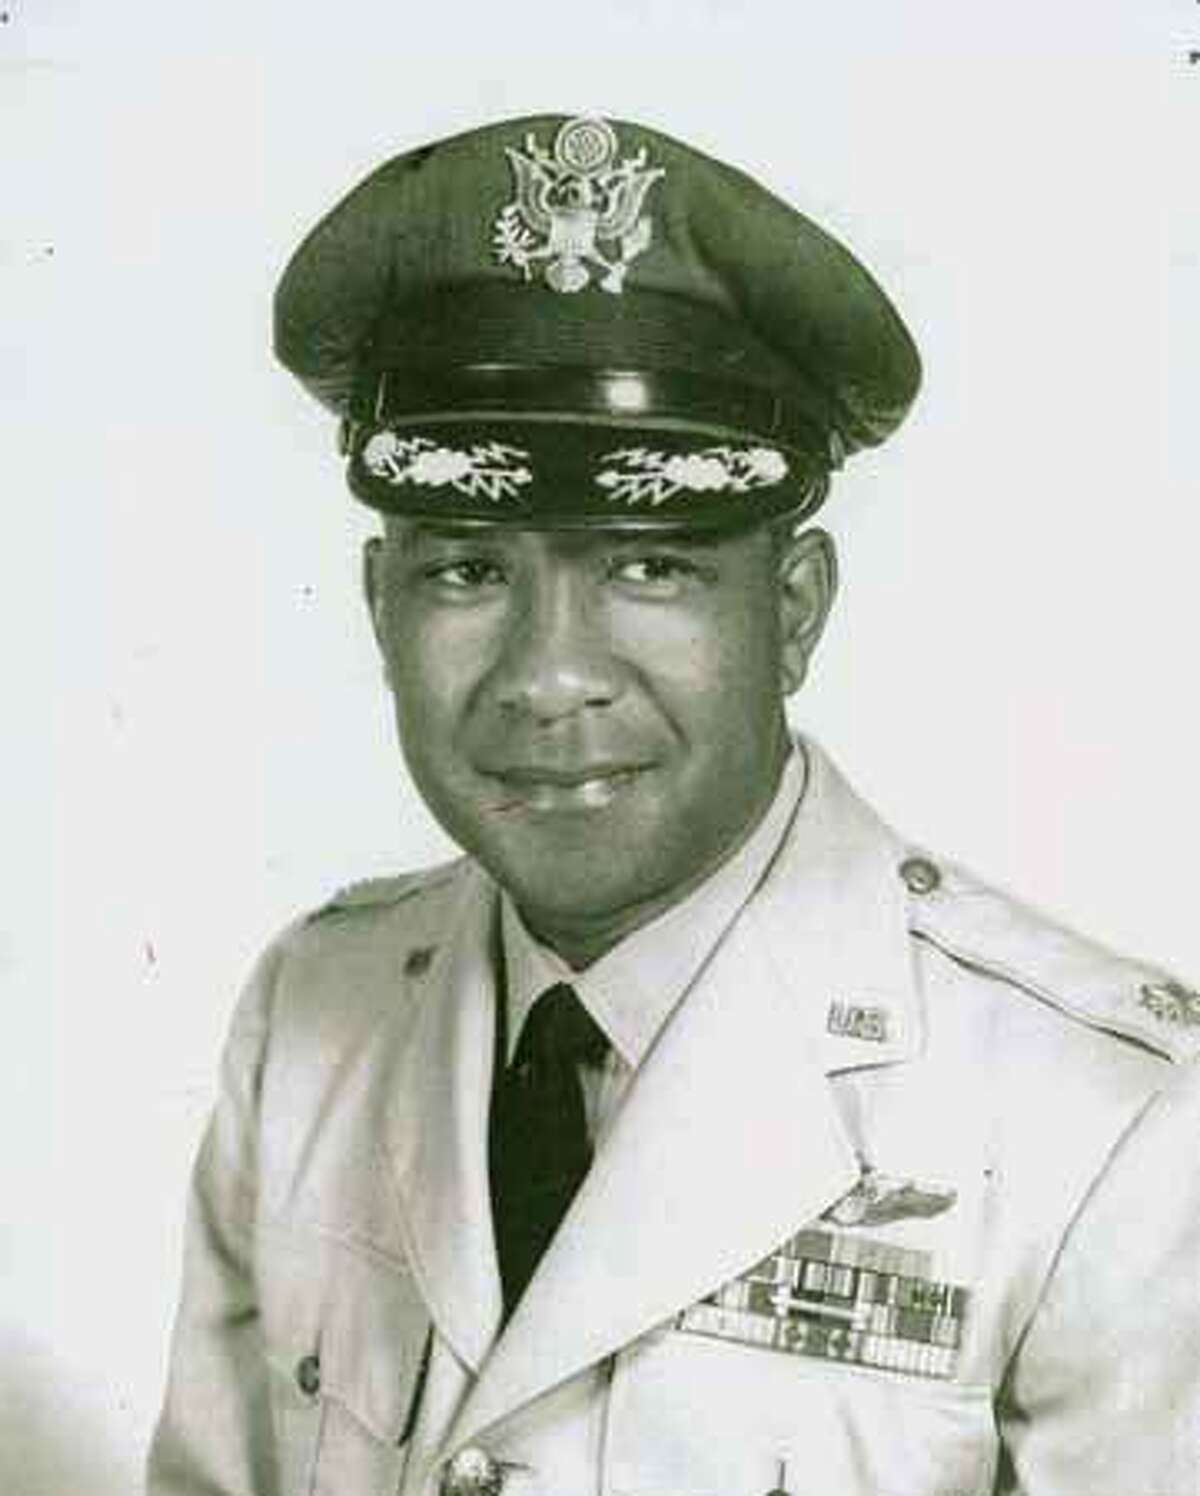 soldier_wilson.jpg Lt. Col. Theodore A. Wilson, United States Air Force. Member of the famed Tuskegee Airmen.Ran on: 03-18-2006 Theodore Allen Wilson flew 99 combat missions during WWII and the Korean War.Ran on: 03-18-2006 Theodore Allen Wilson flew 99 combat missions during WWII and the Korean War. MANDATORY CREDIT FOR PHOTOG AND SF CHRONICLE/ -MAGS OUT